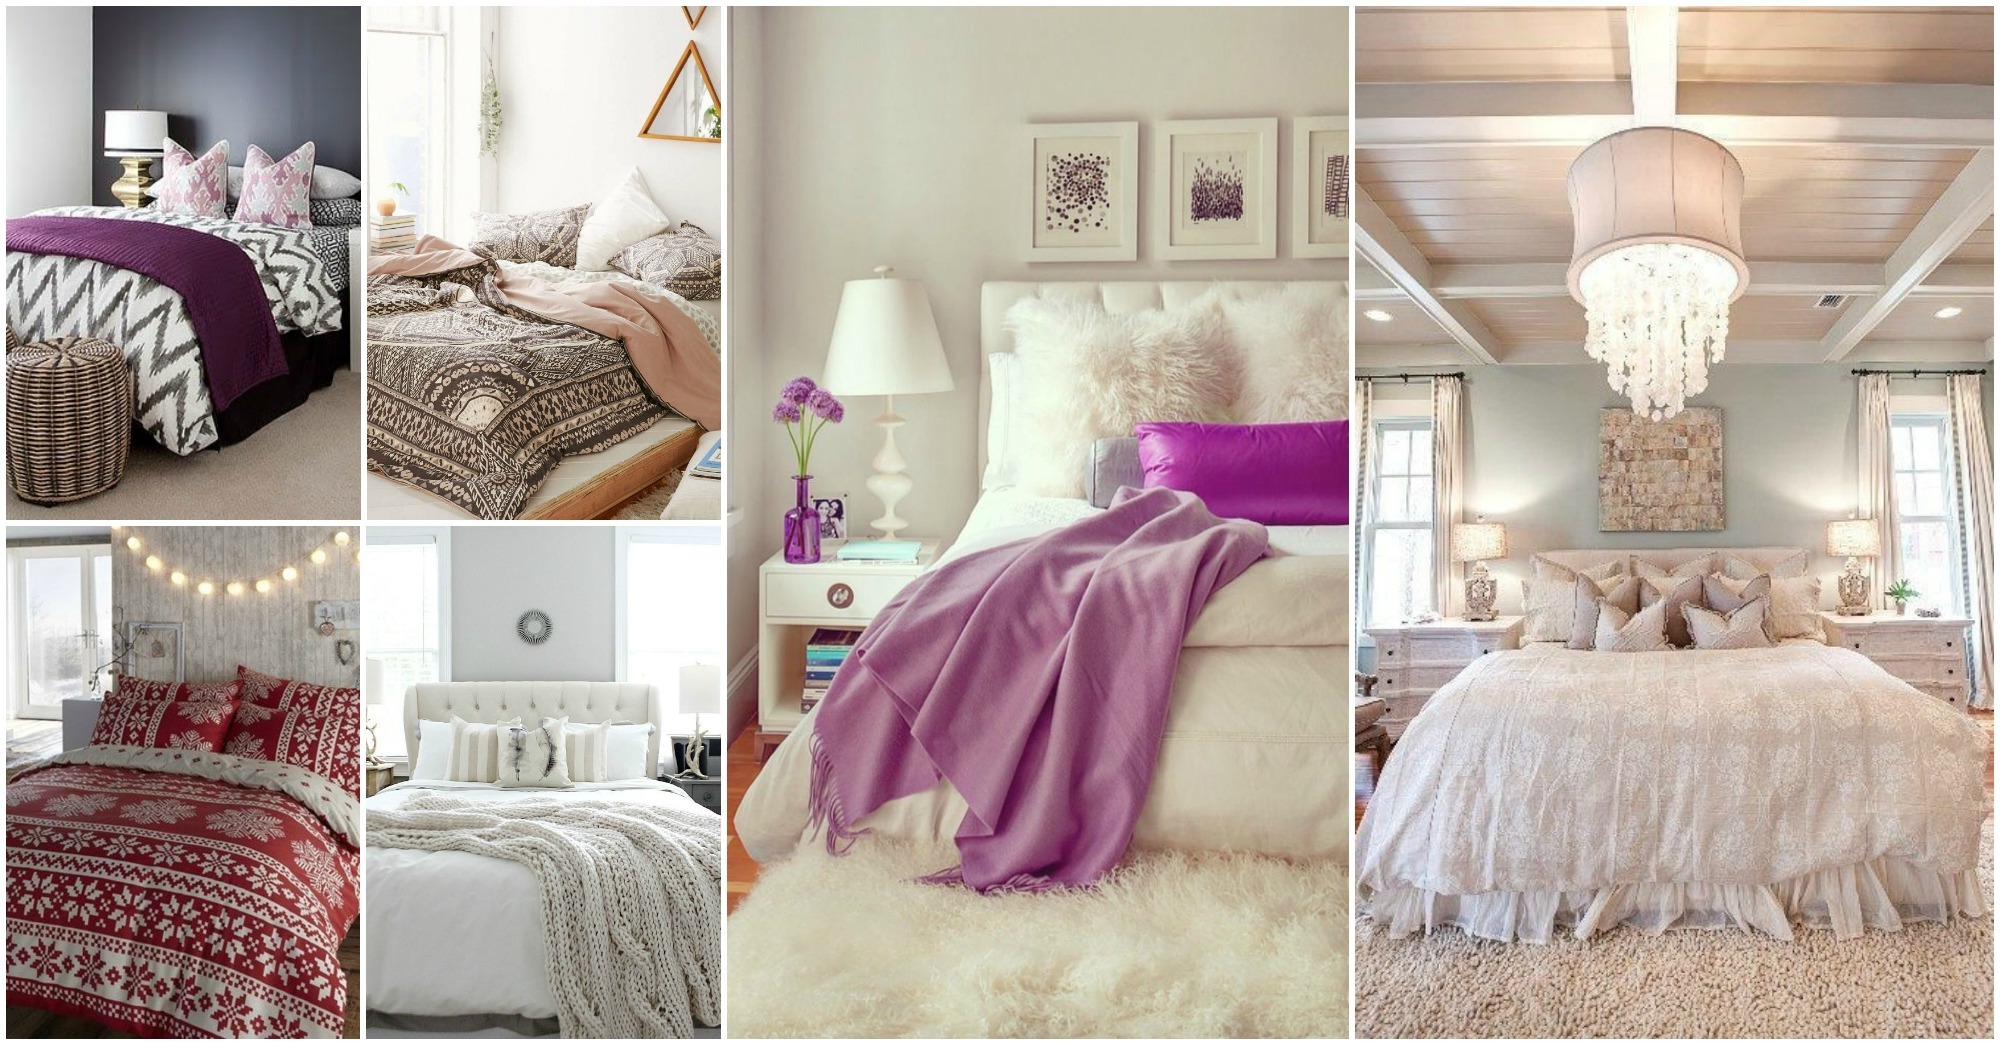 Modern Fashion Bedroom With Fur 31 Ideas For A Cozy Home Heystyles